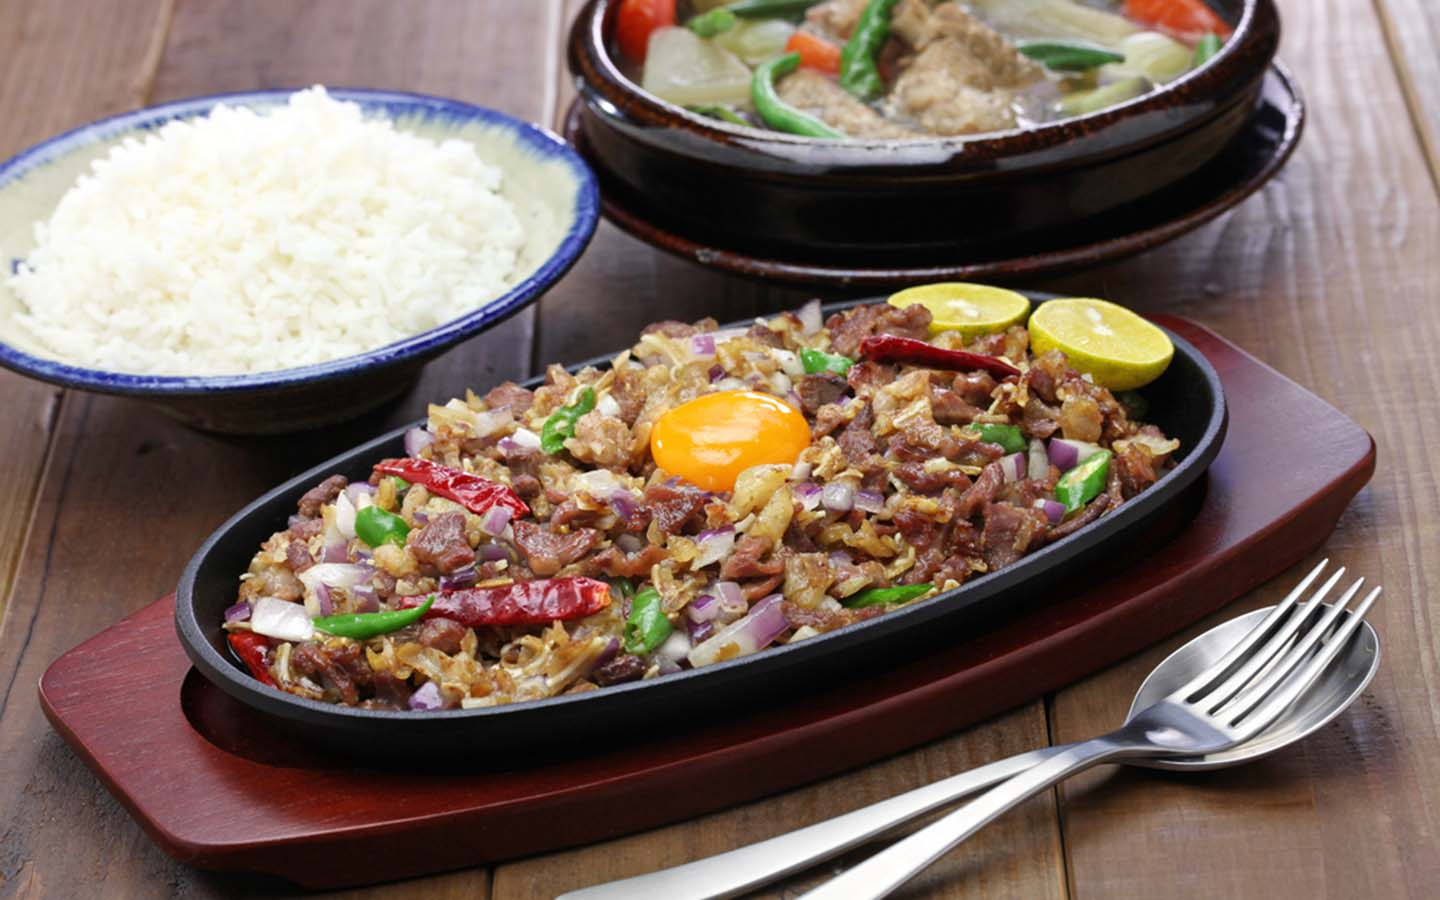 Filipino cuisine served with rice